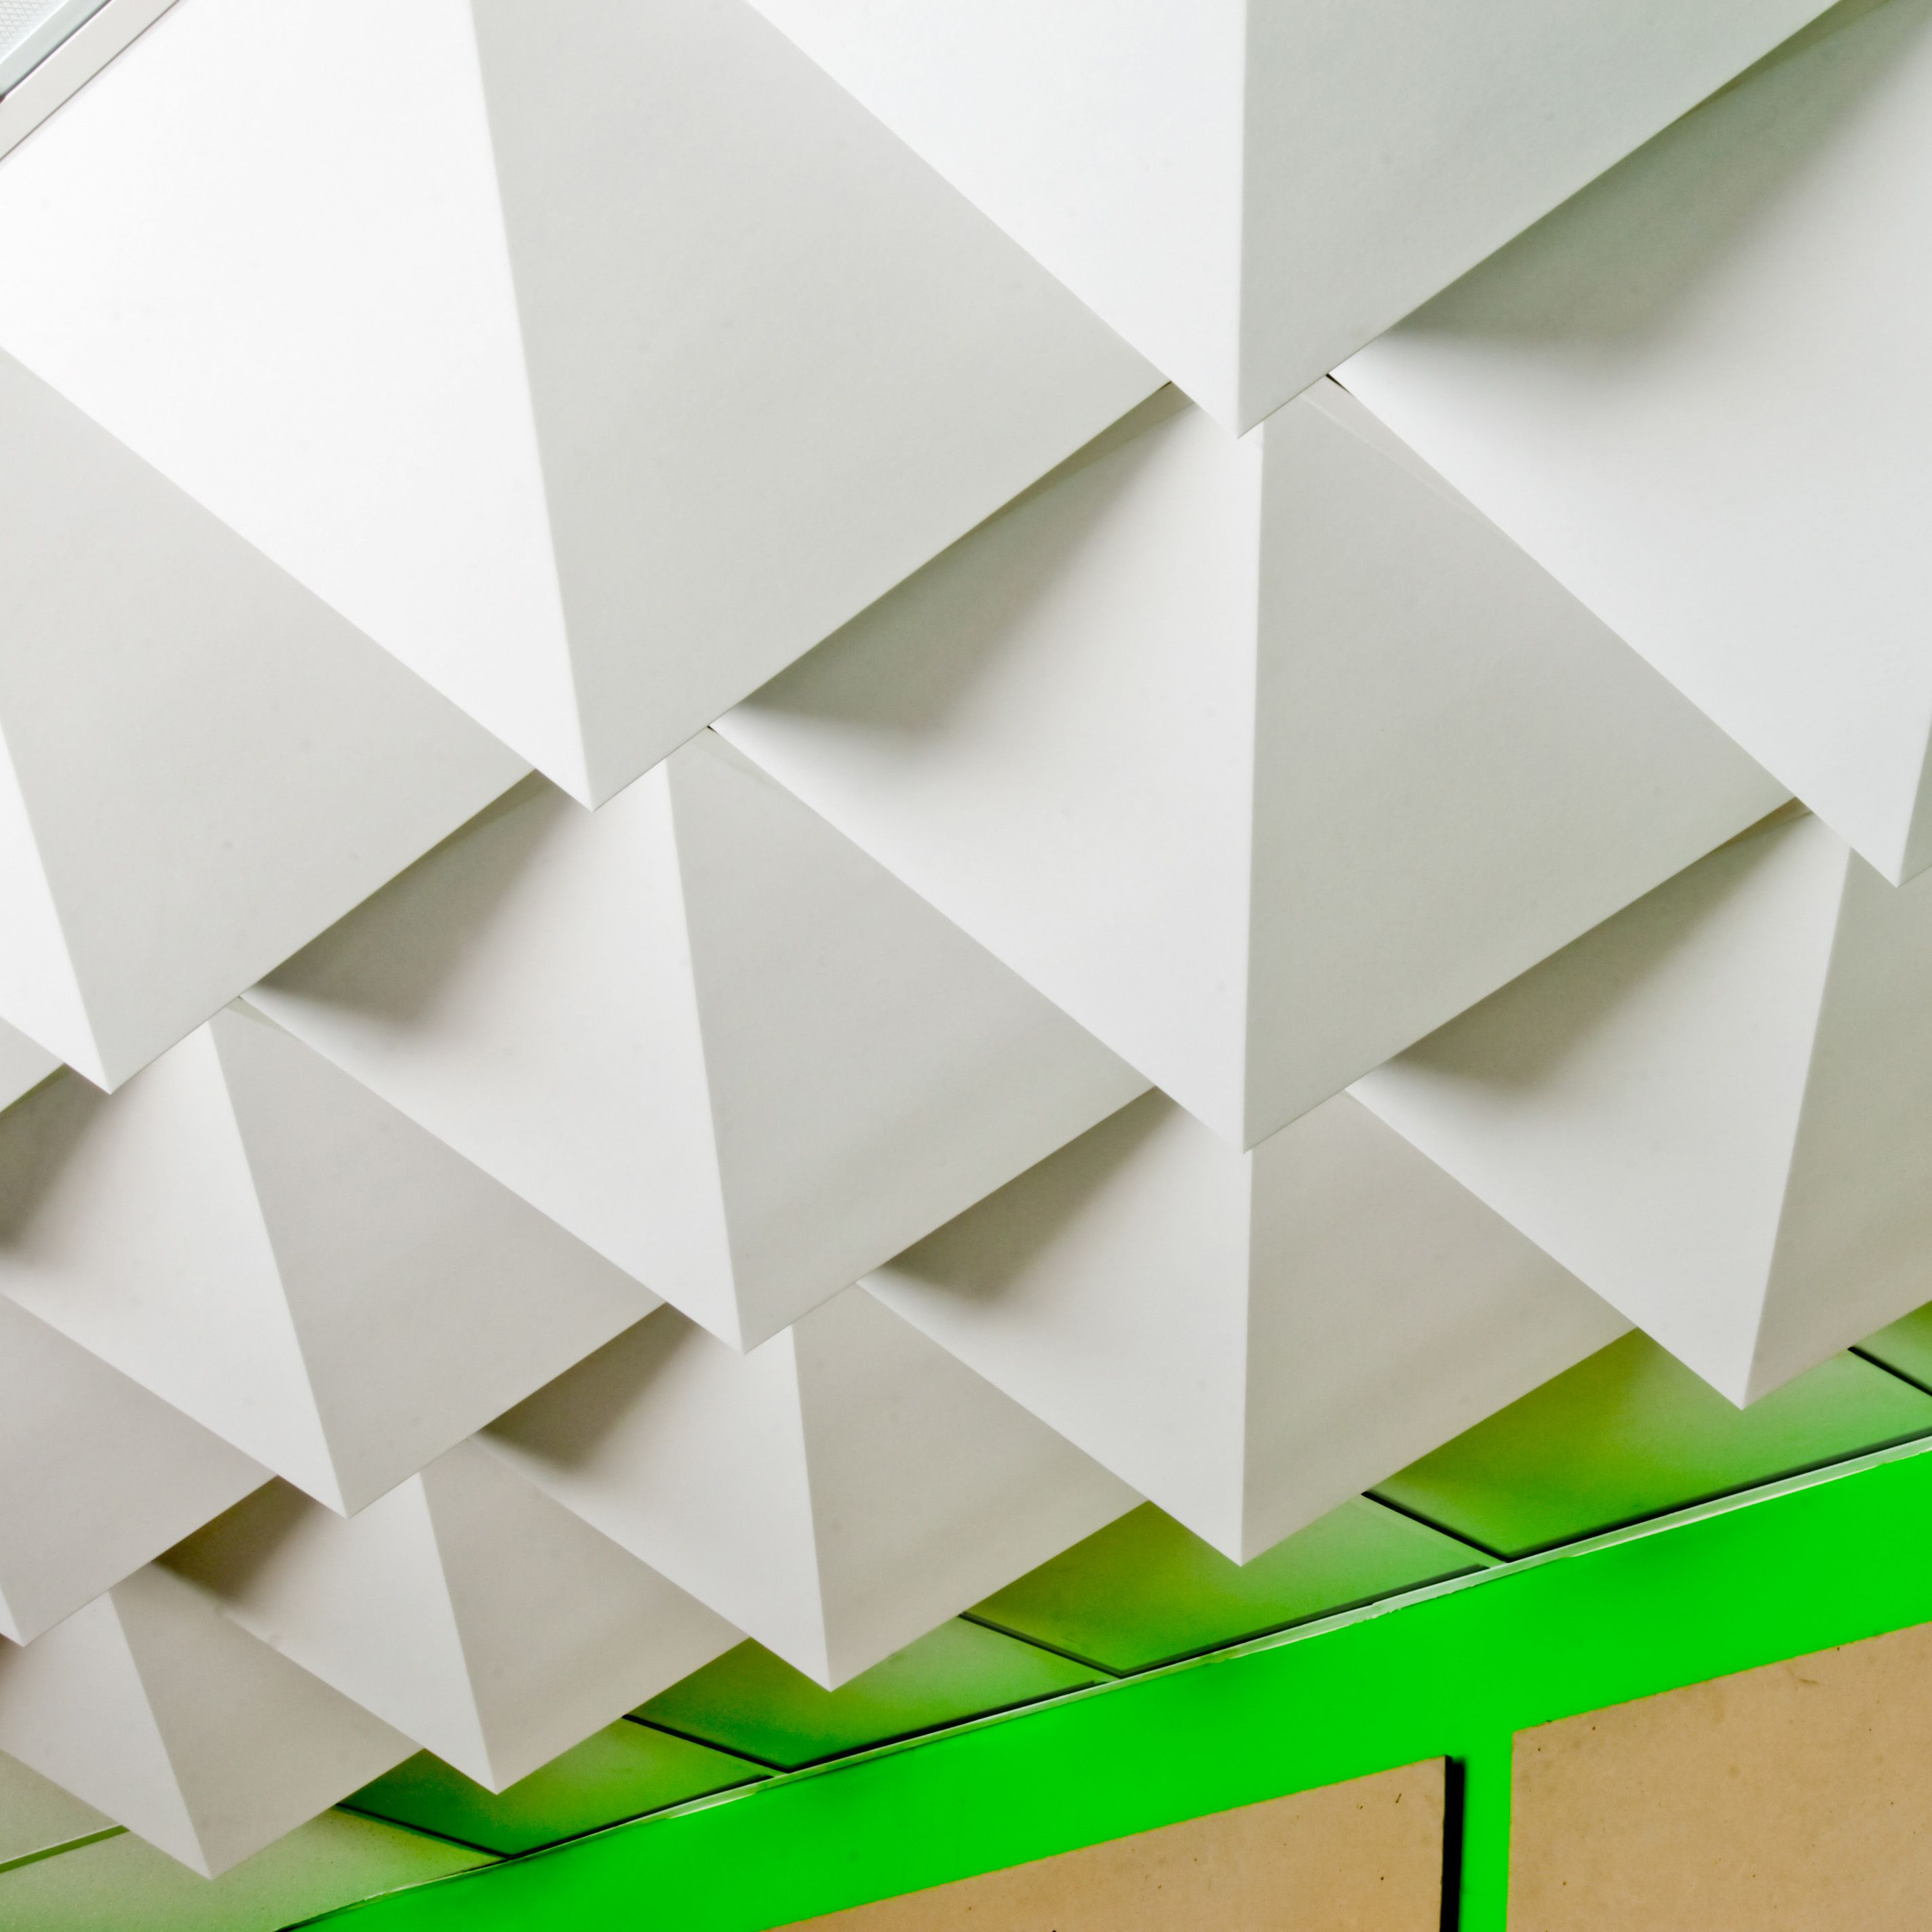 Foldscape is a new concept in three dimensional drop ceiling tiles foldscape is a new concept in three dimensional drop ceiling tiles made from dailygadgetfo Choice Image